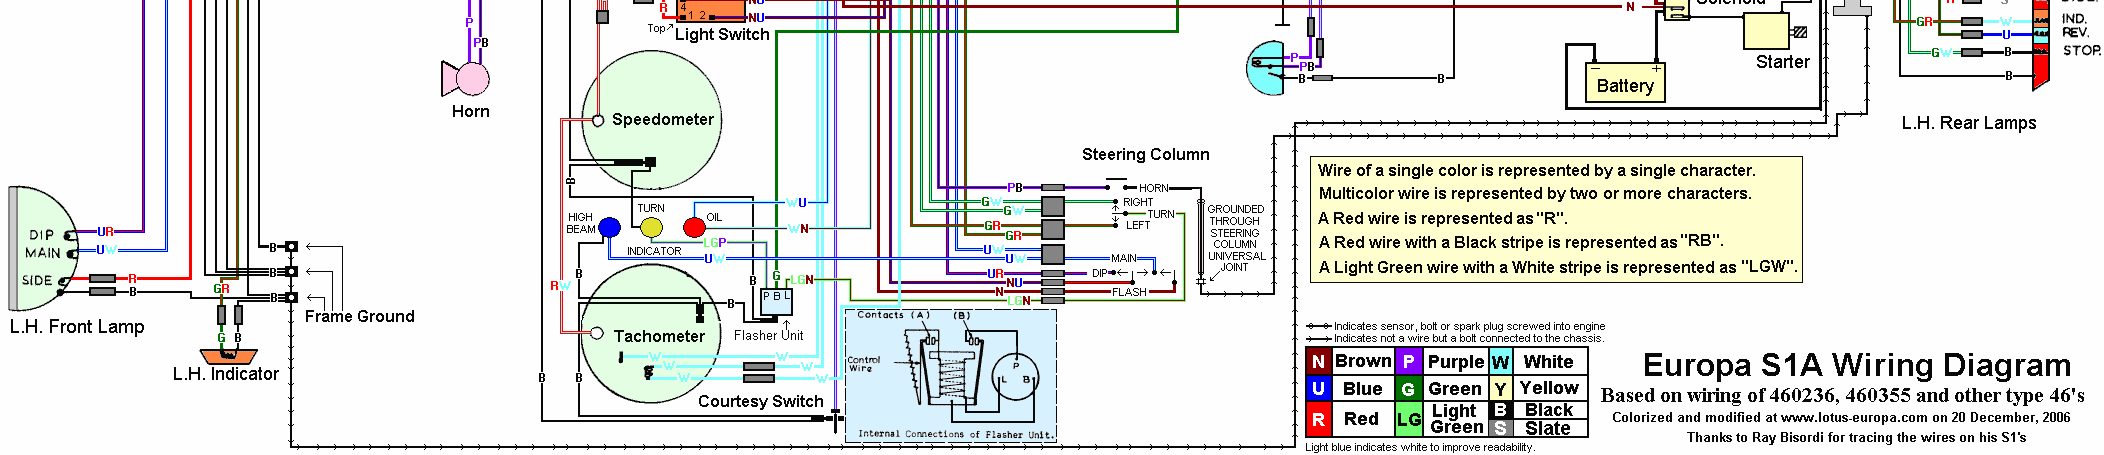 lotus europa wiring diagrams s1, s1a, s1b, s2, tc, spcl pdf CDL Pre-Trip Inspection Diagram series 1a courtesy of